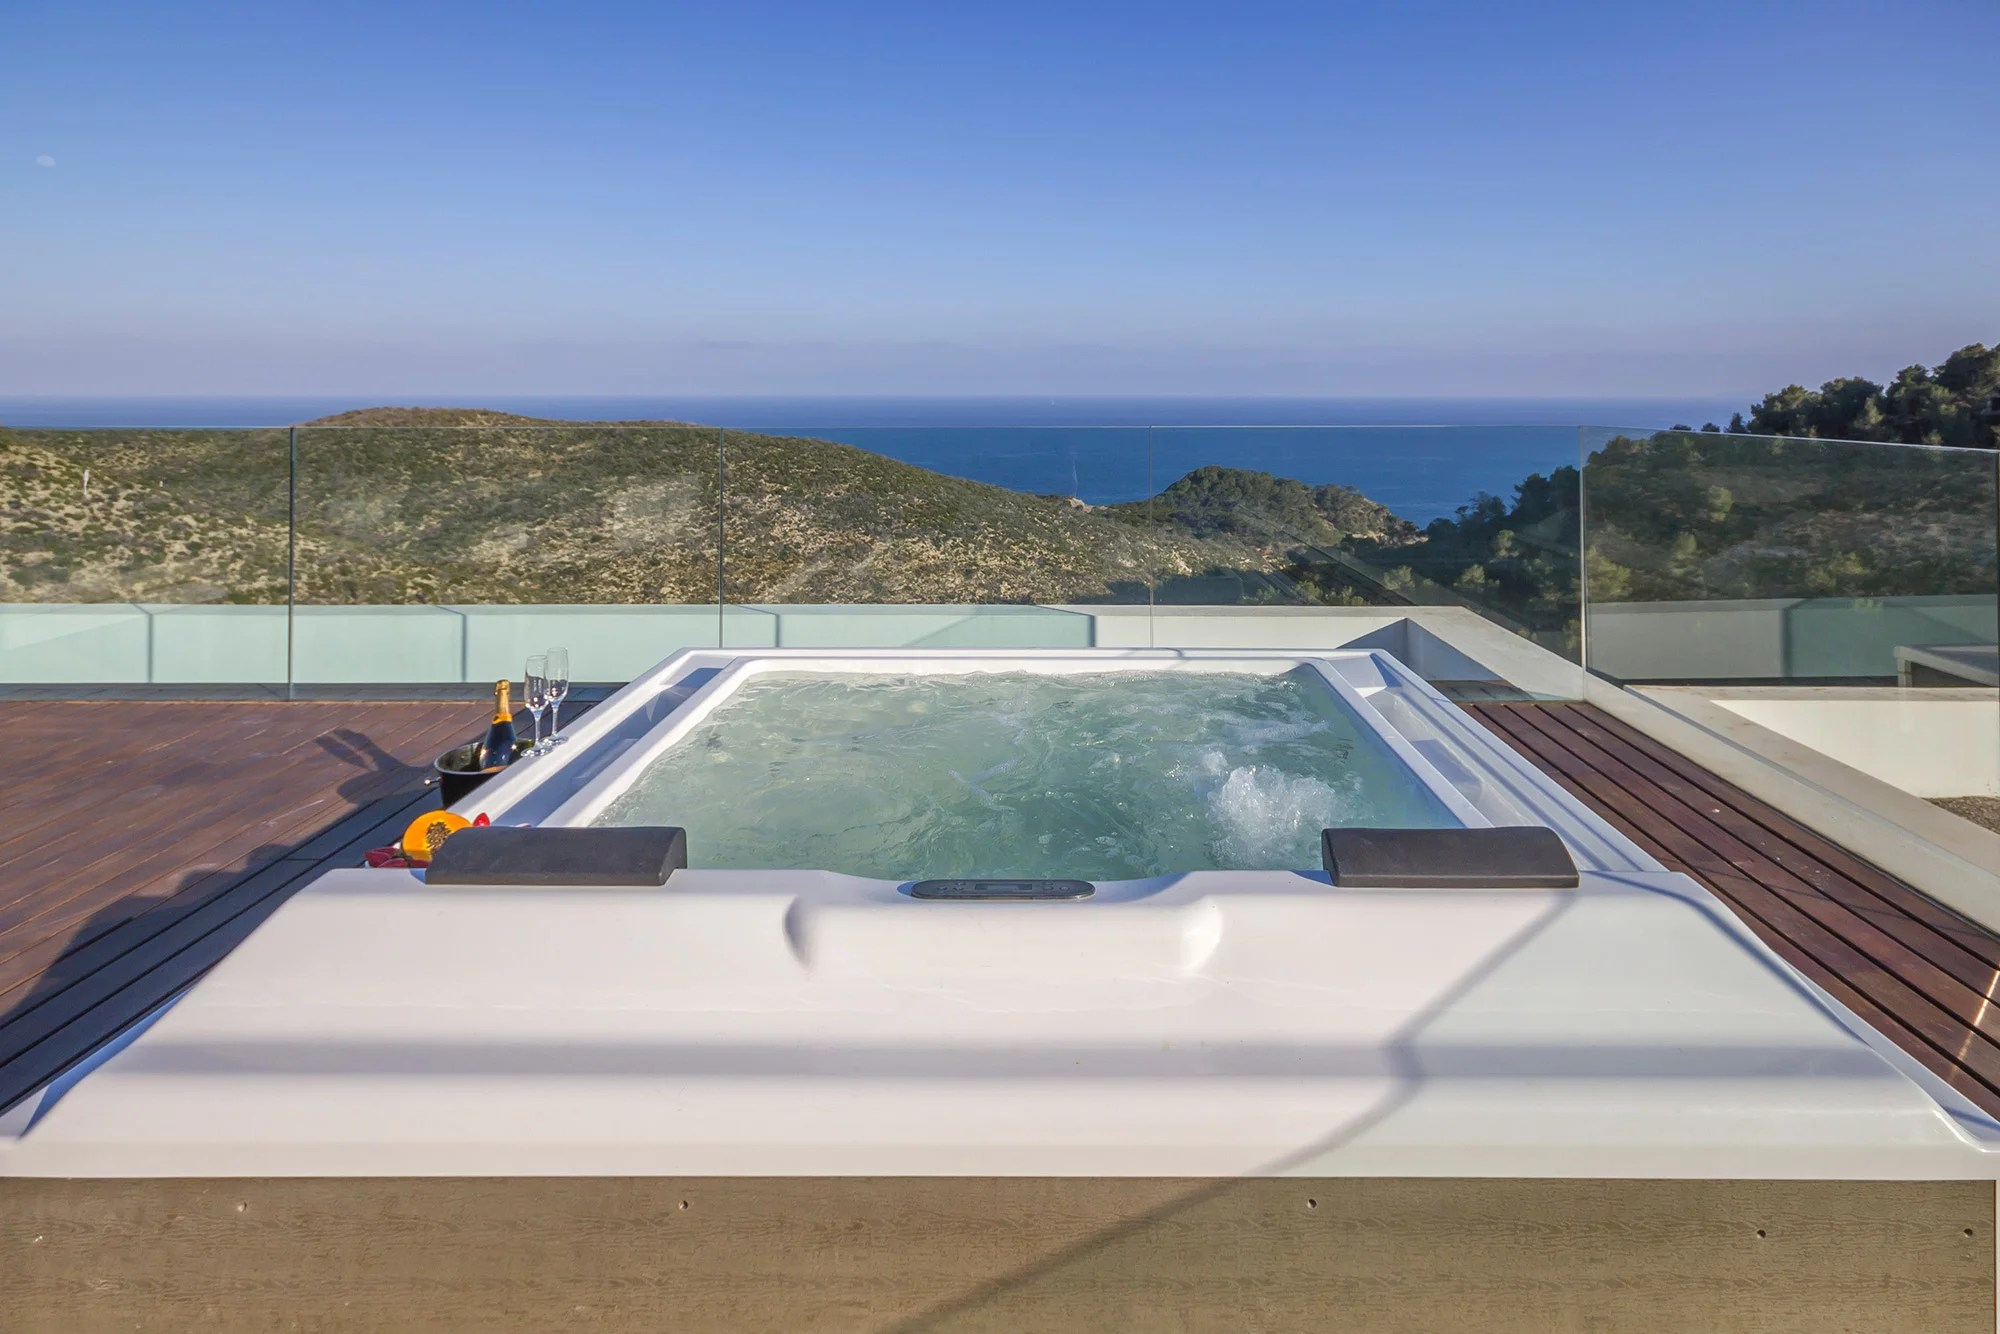 Luxury villa for rent in Ibiza Roca Llisa 6 bedrooms